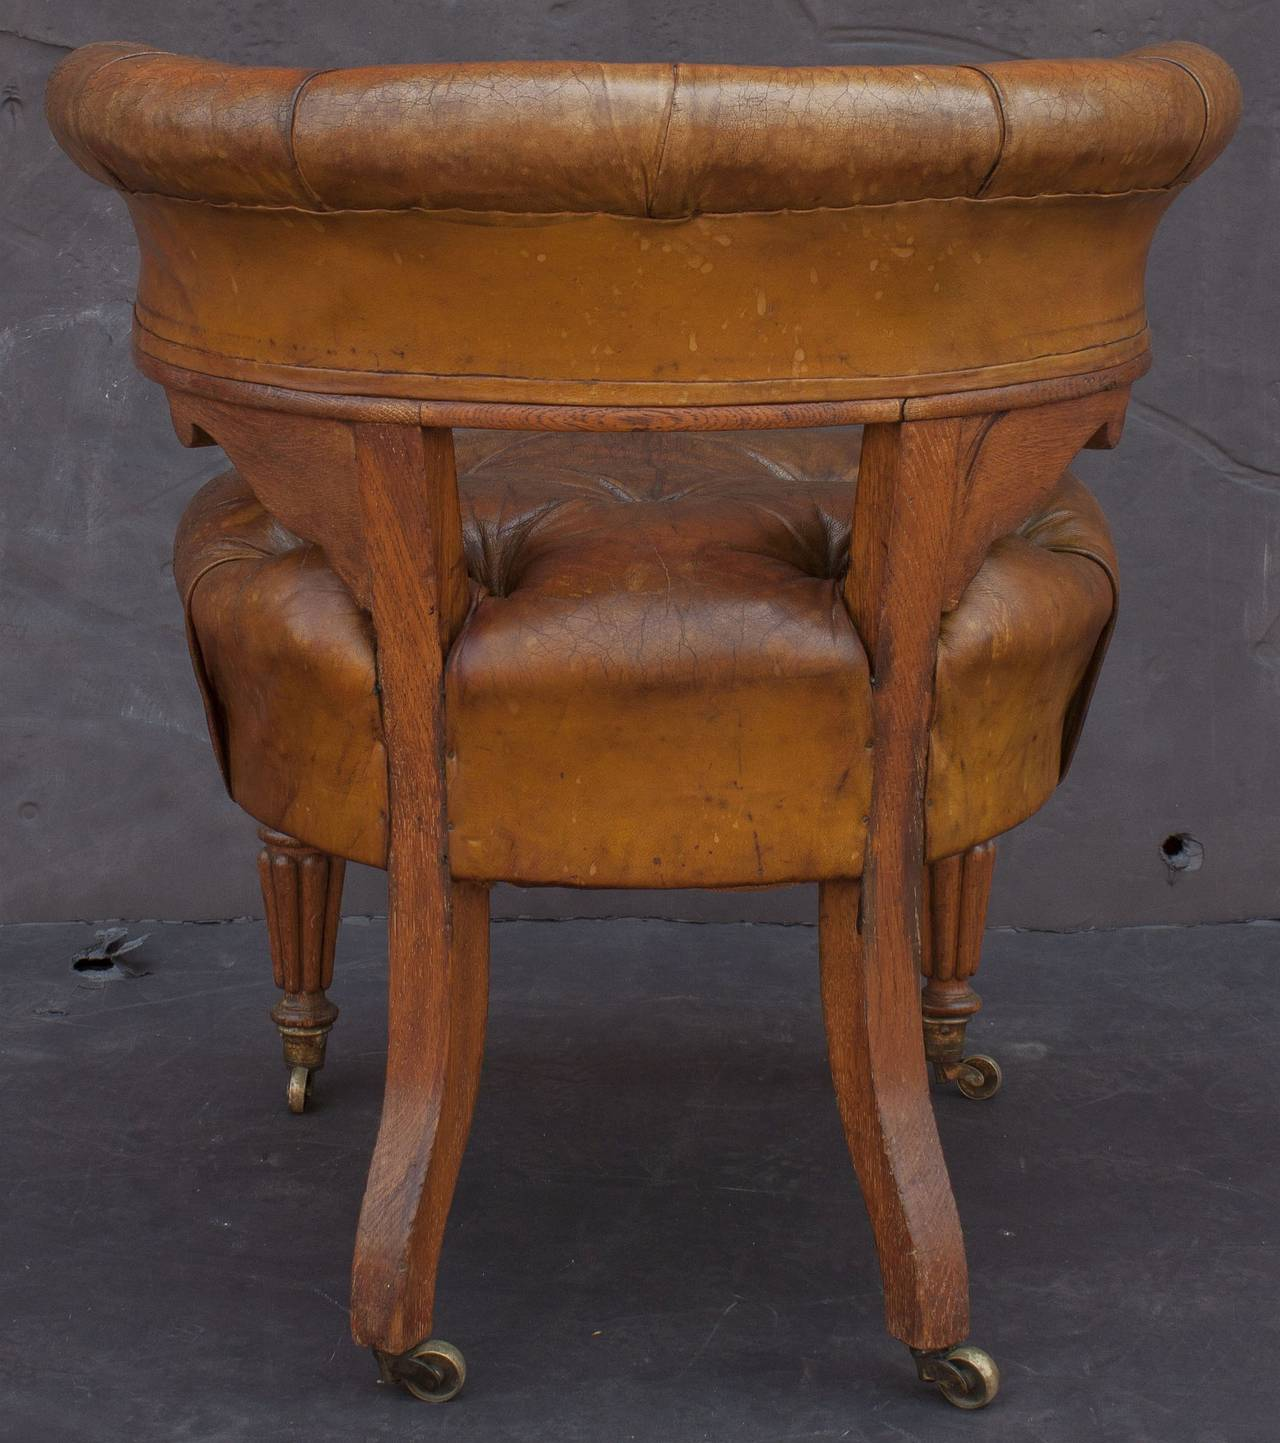 English Tufted Leather Desk Chair For Sale At 1stdibs. Full resolution‎  photo, nominally Width 1280 Height 1443 pixels, photo with #714224.